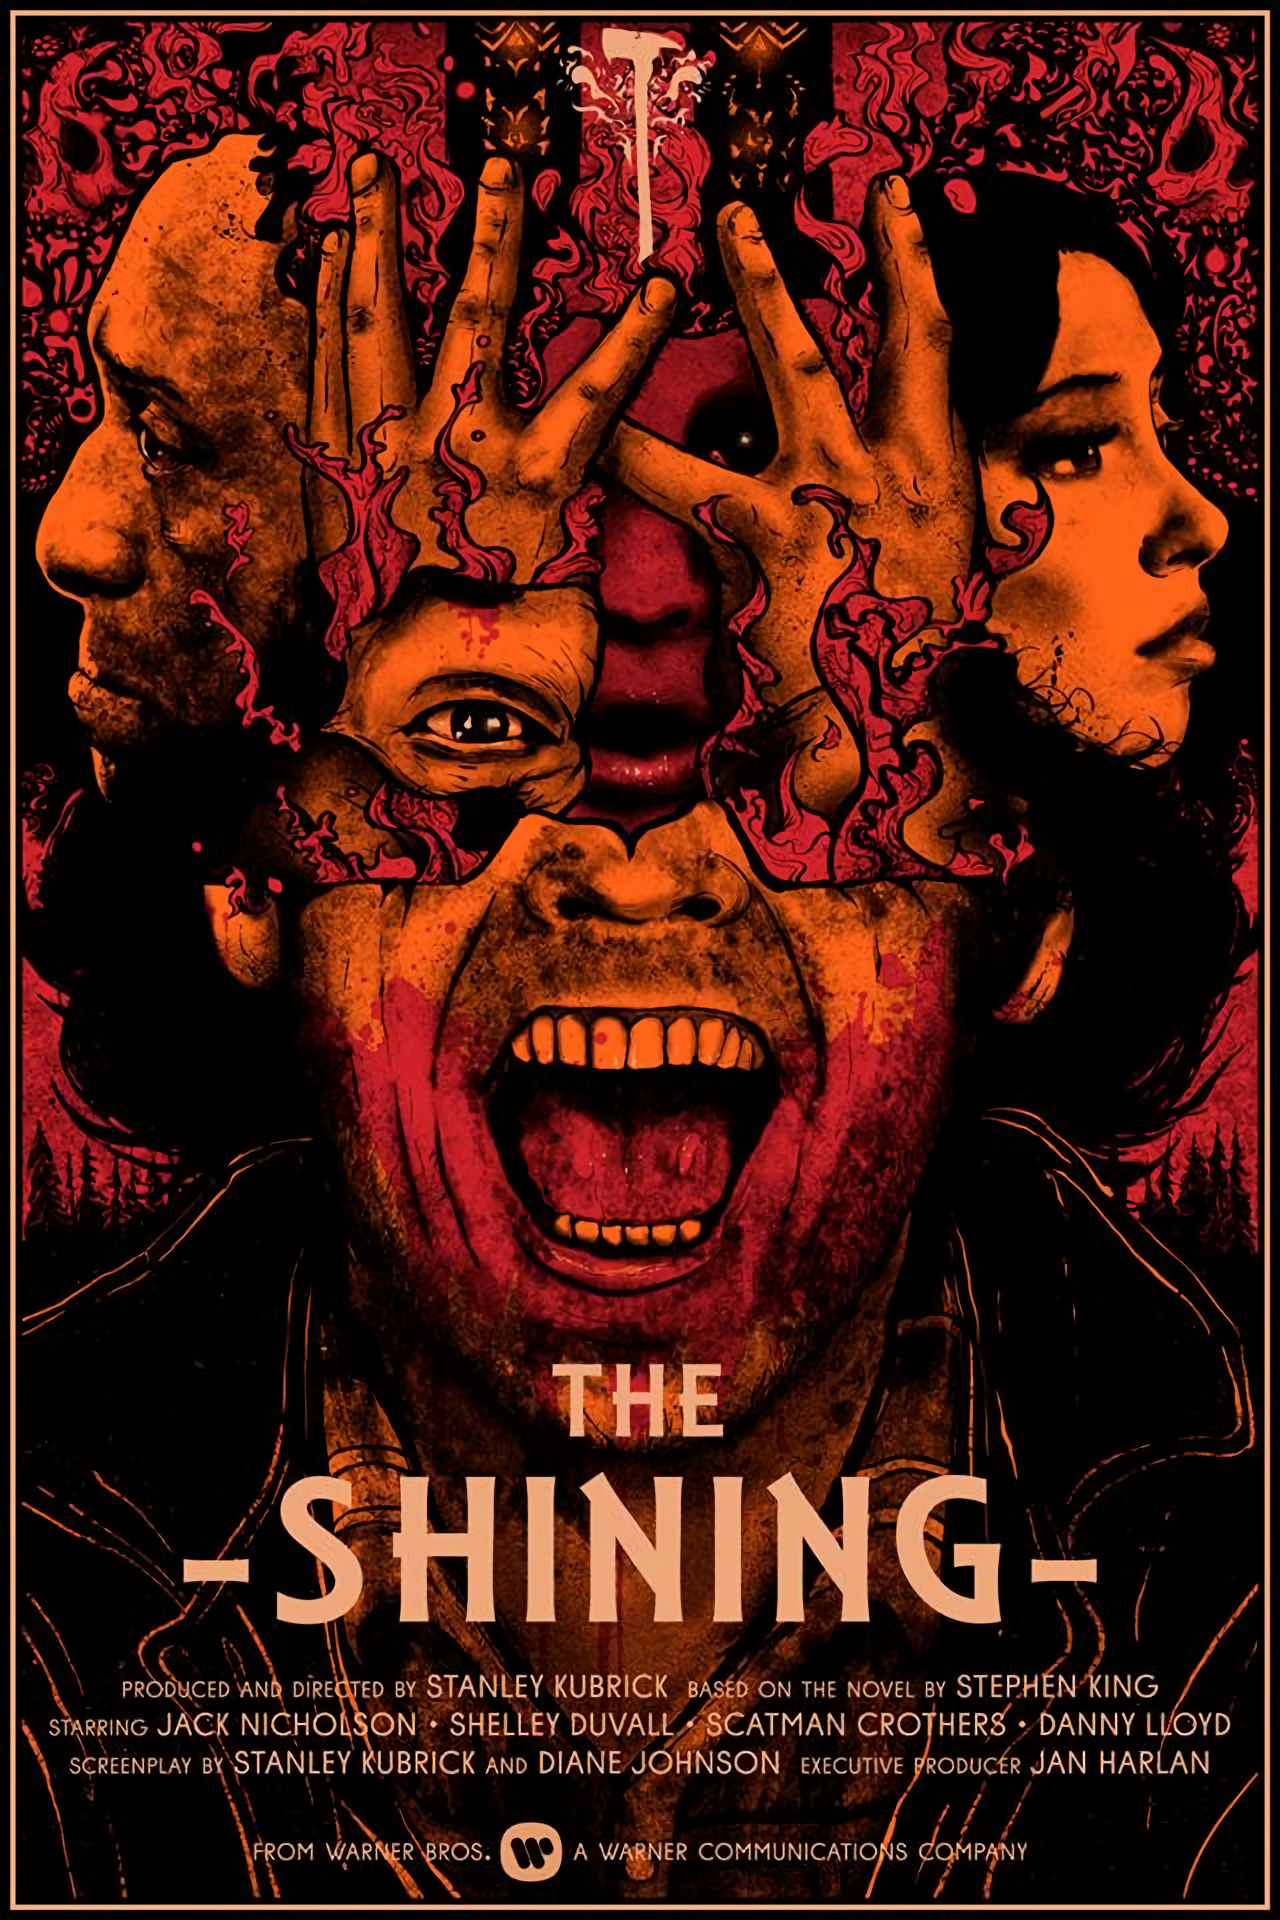 The Shining 1980 Hd Wallpaper From Gallsourcecom